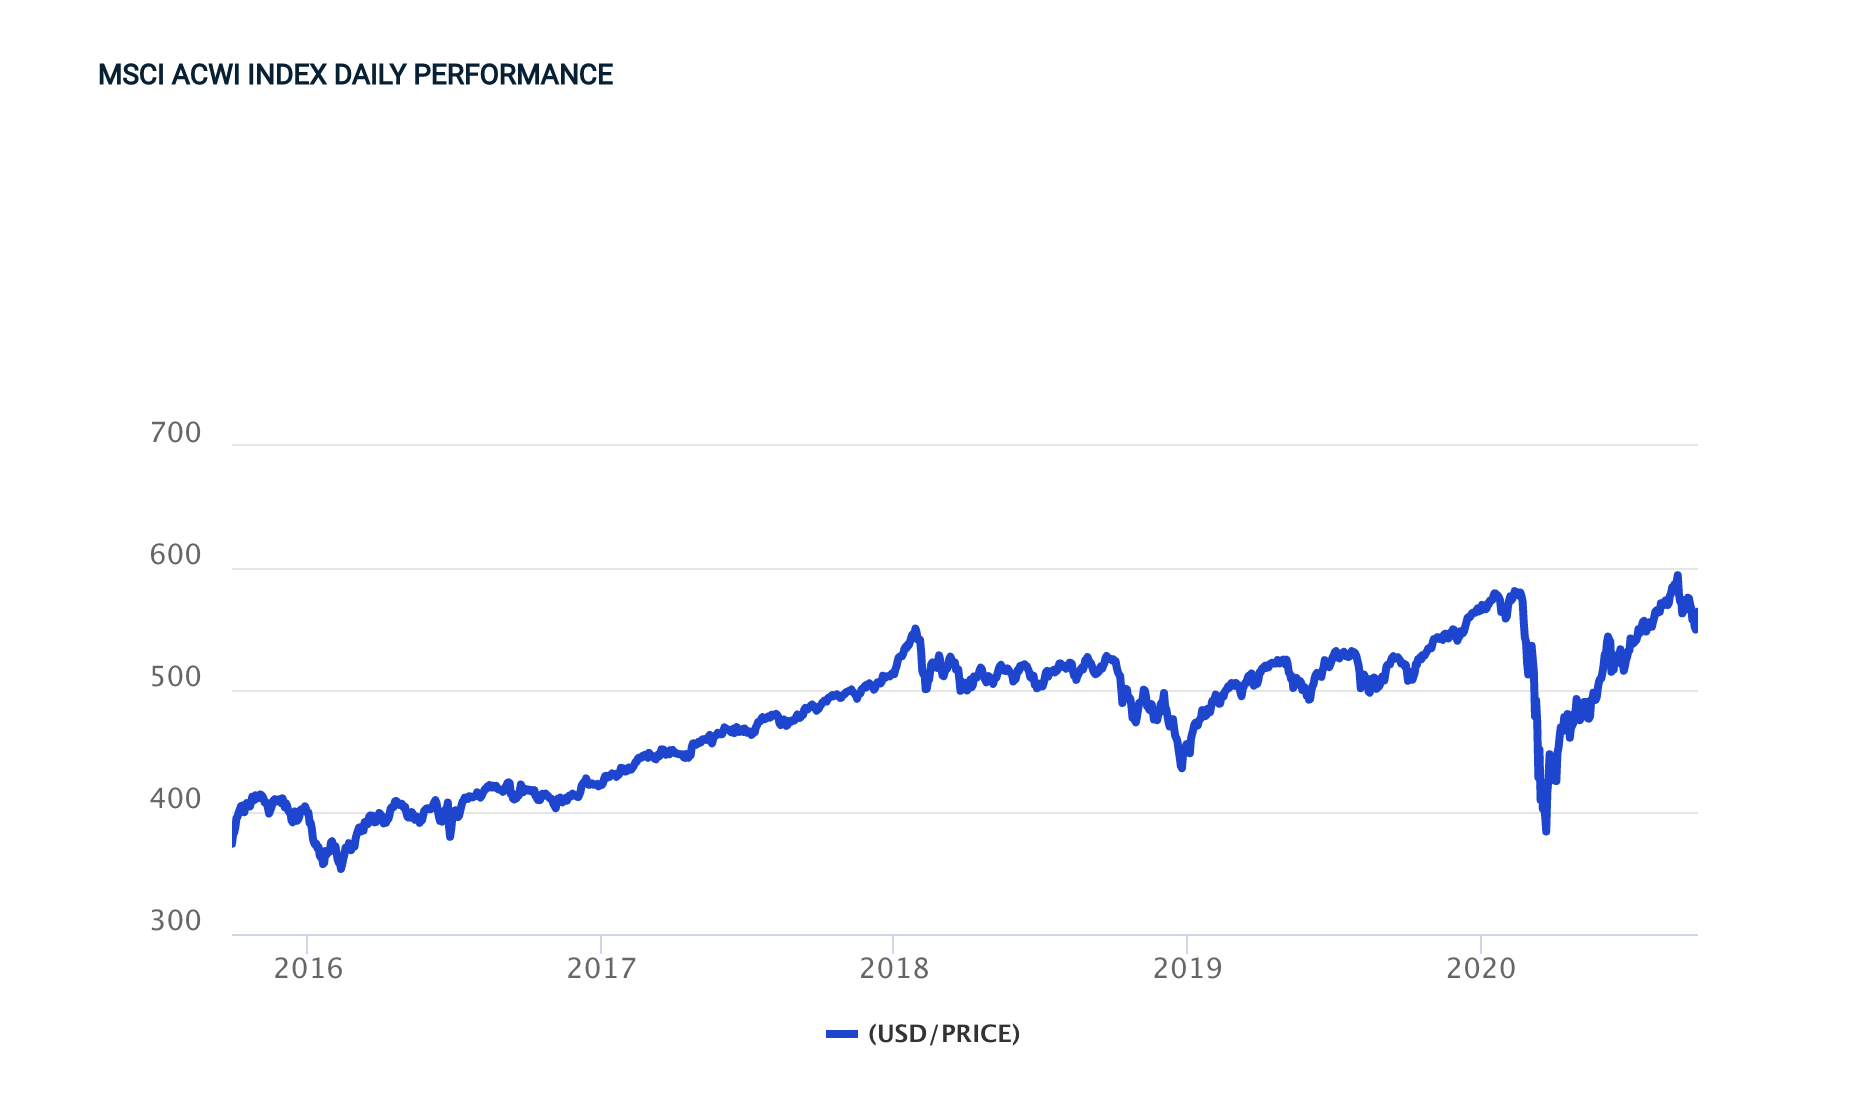 MSCI ACWI INDEX DAILY PERFORMANCE